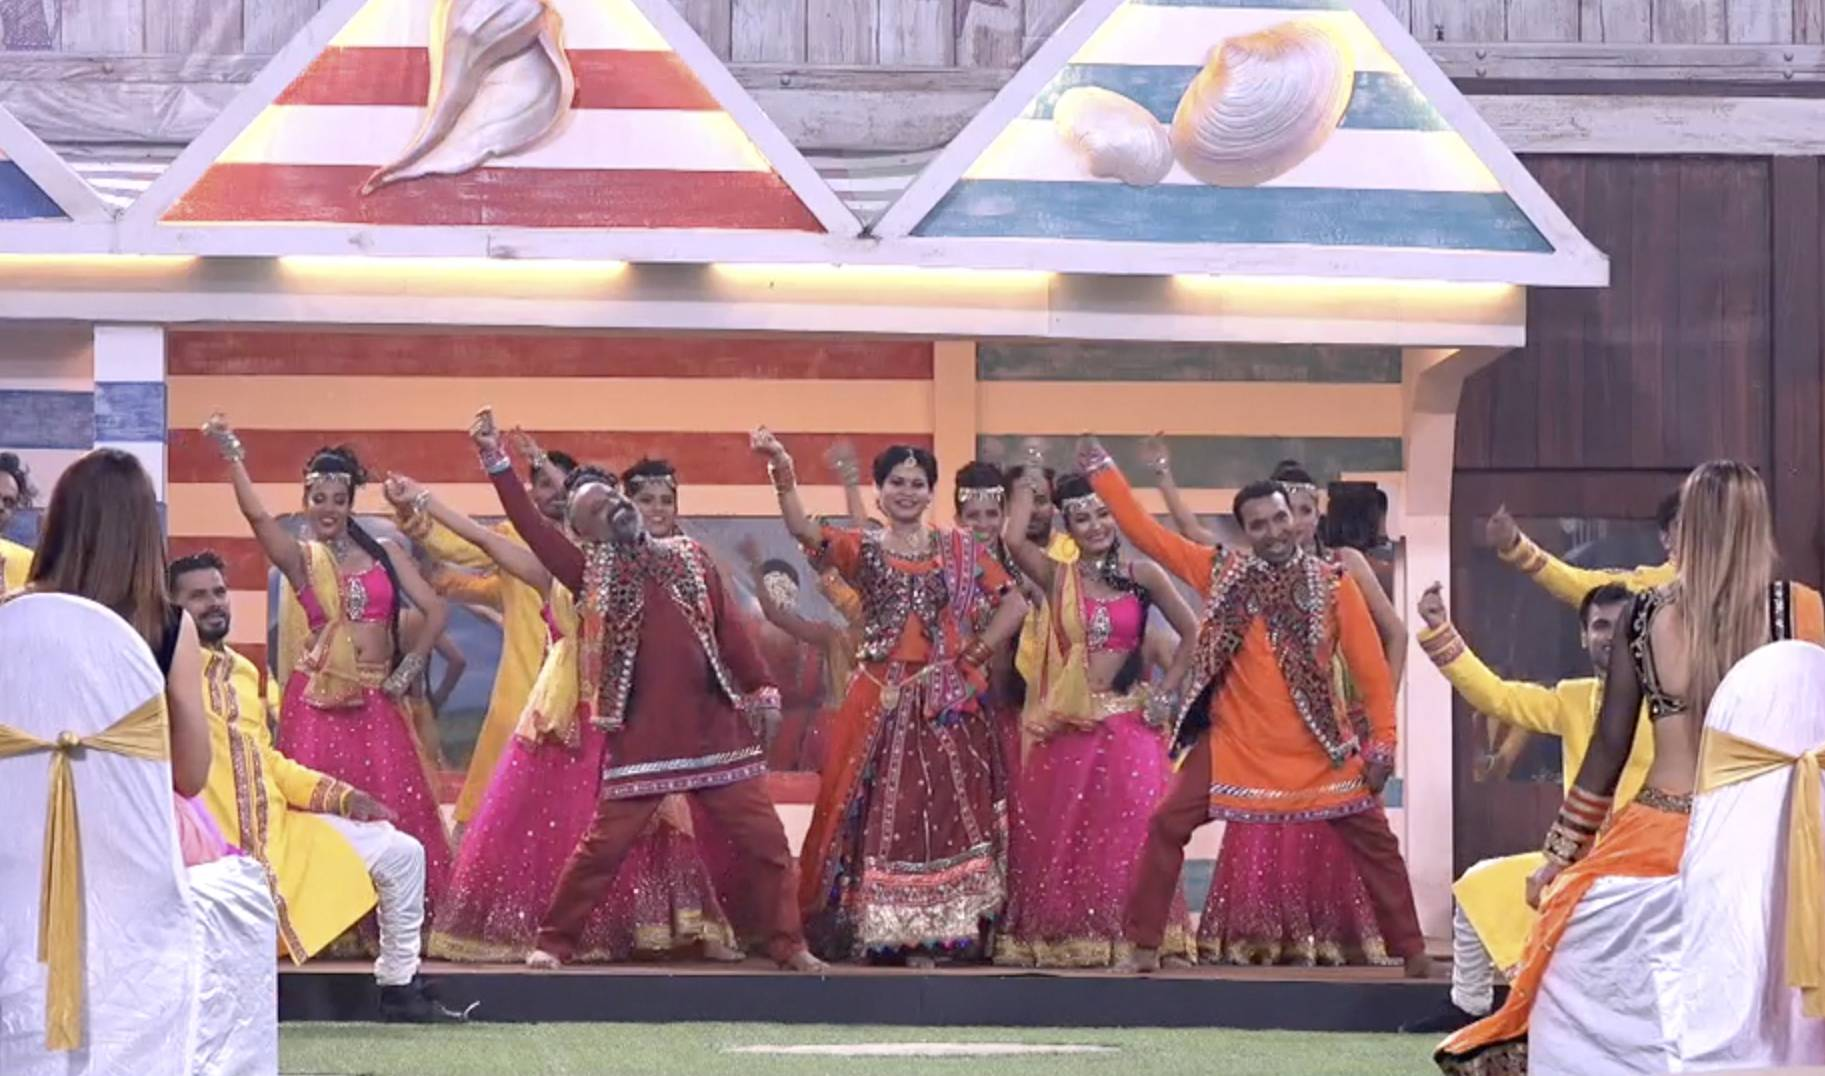 Festive Celebrations in the Bigg Boss House!